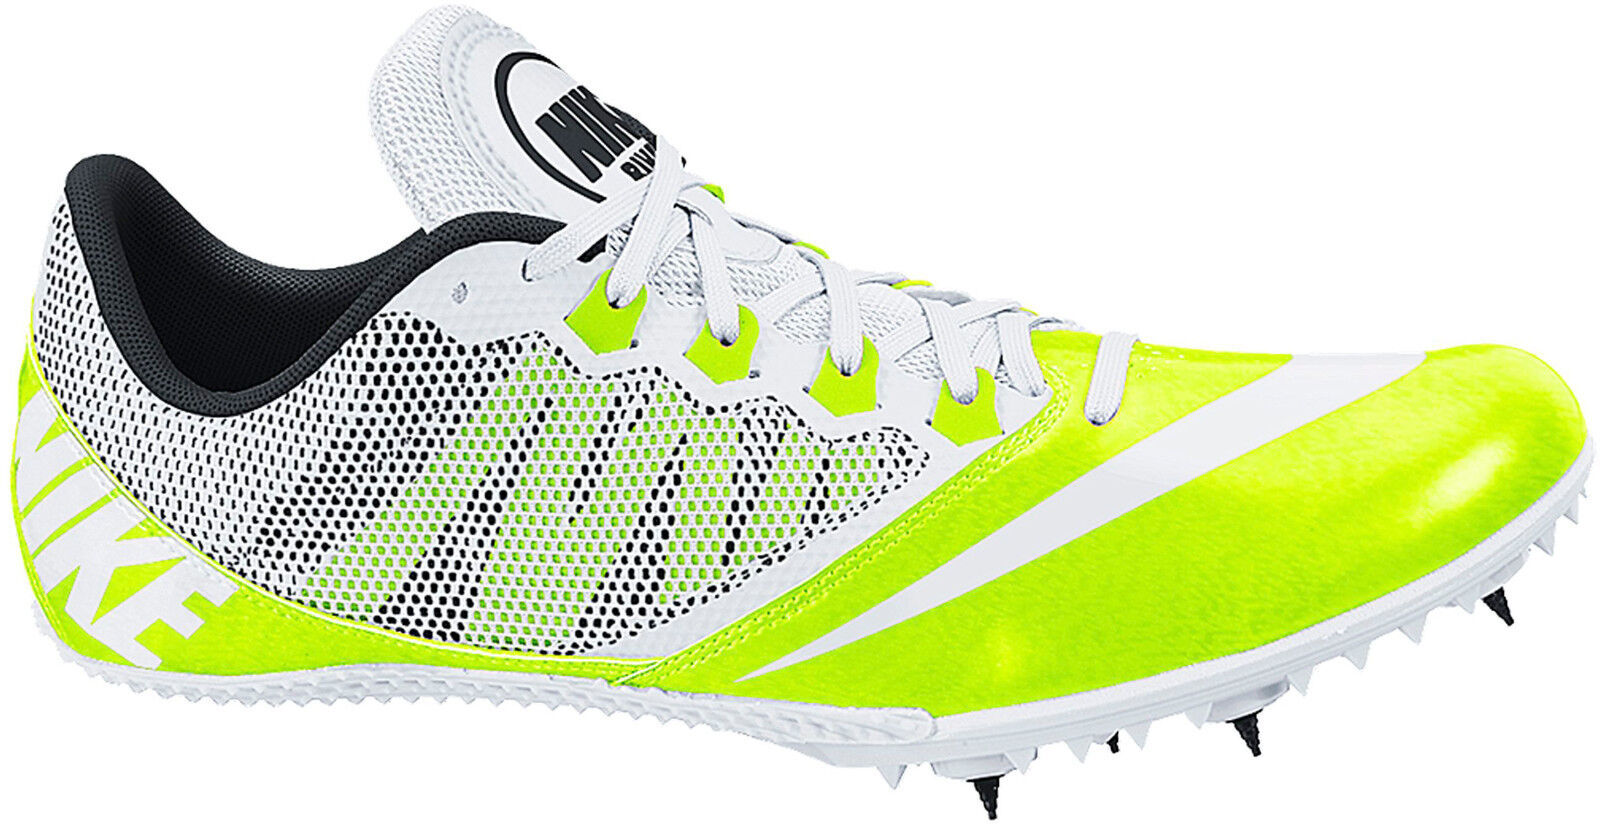 Nike Zoom Rival S 7 Men's Track Sprint Spikes Style 616313-702 MSRP  65